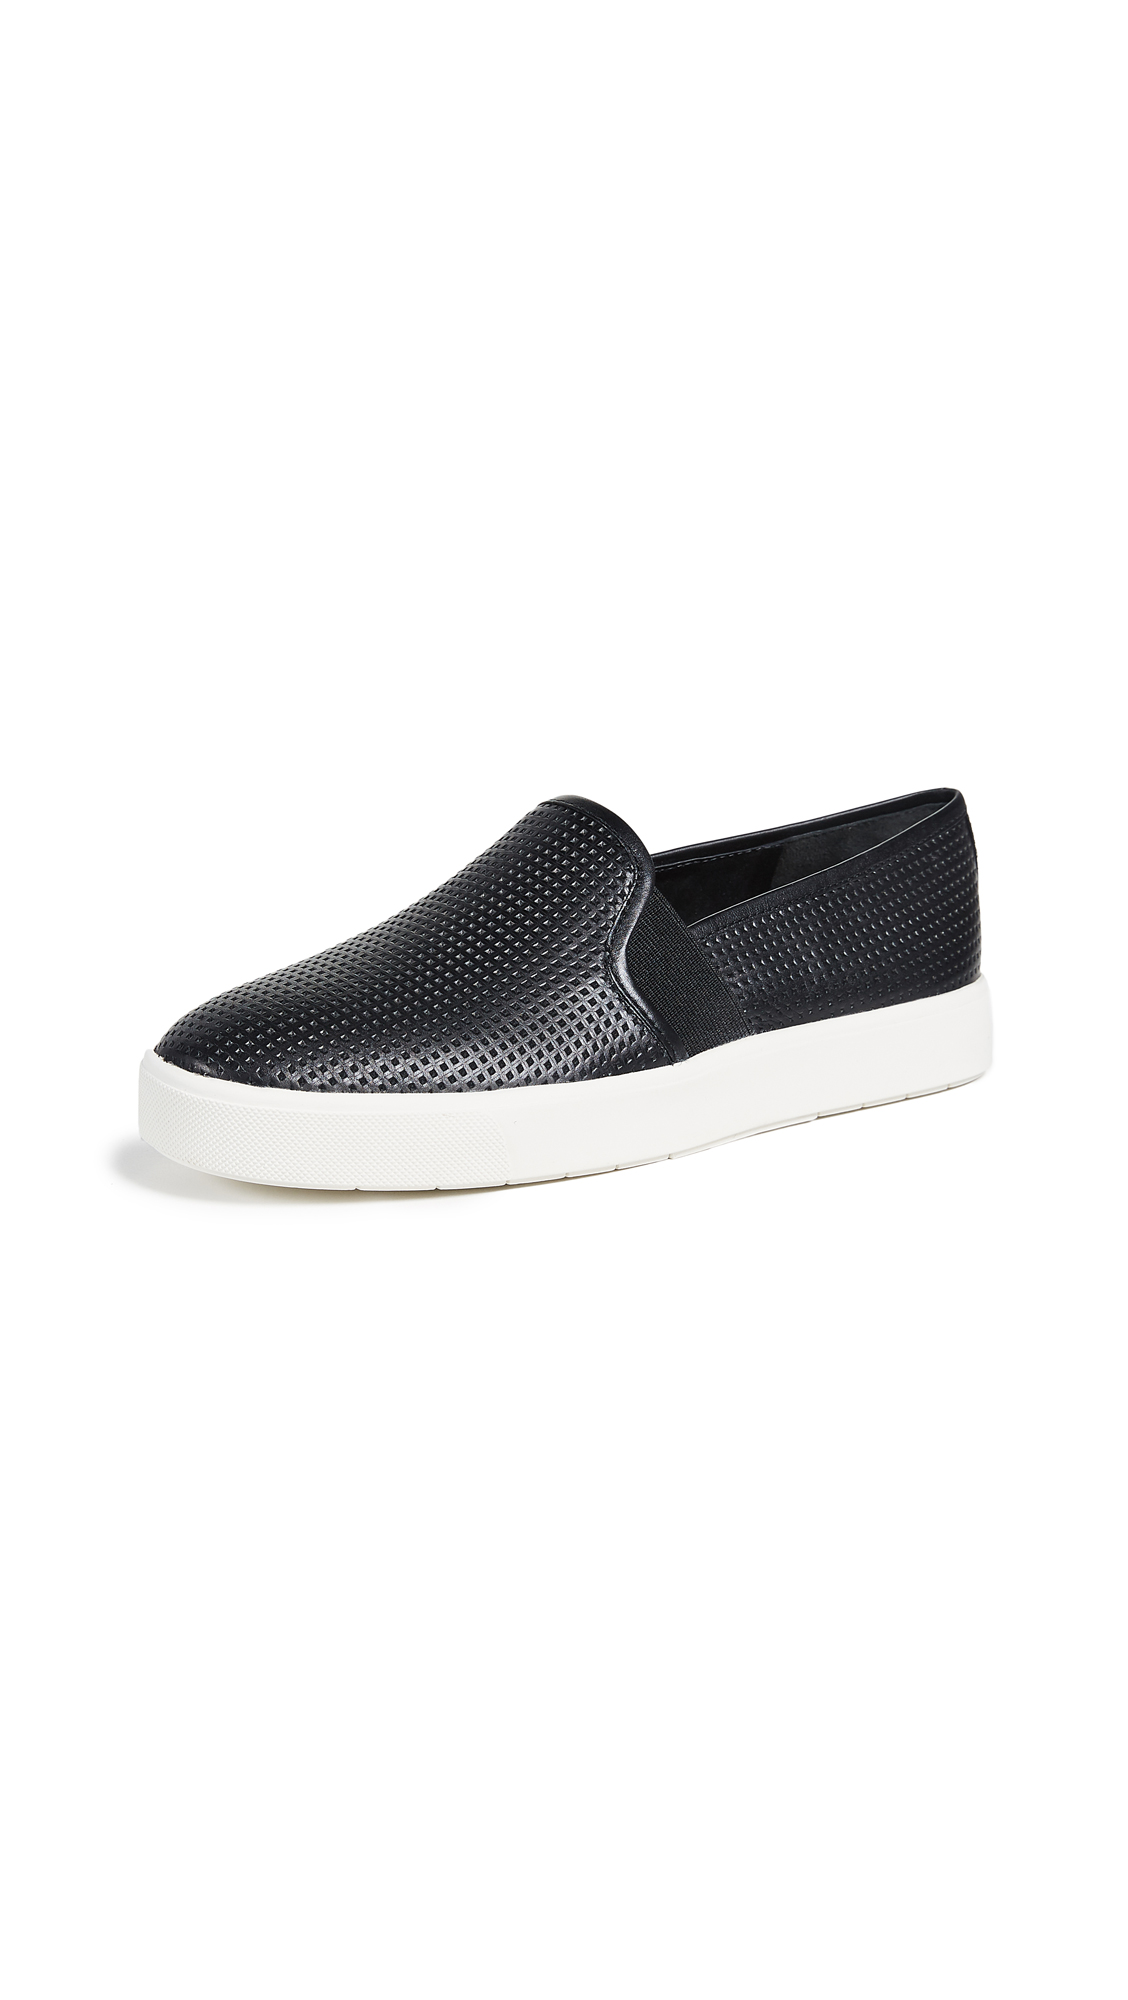 Vince Blair Slip On Sneakers - Black